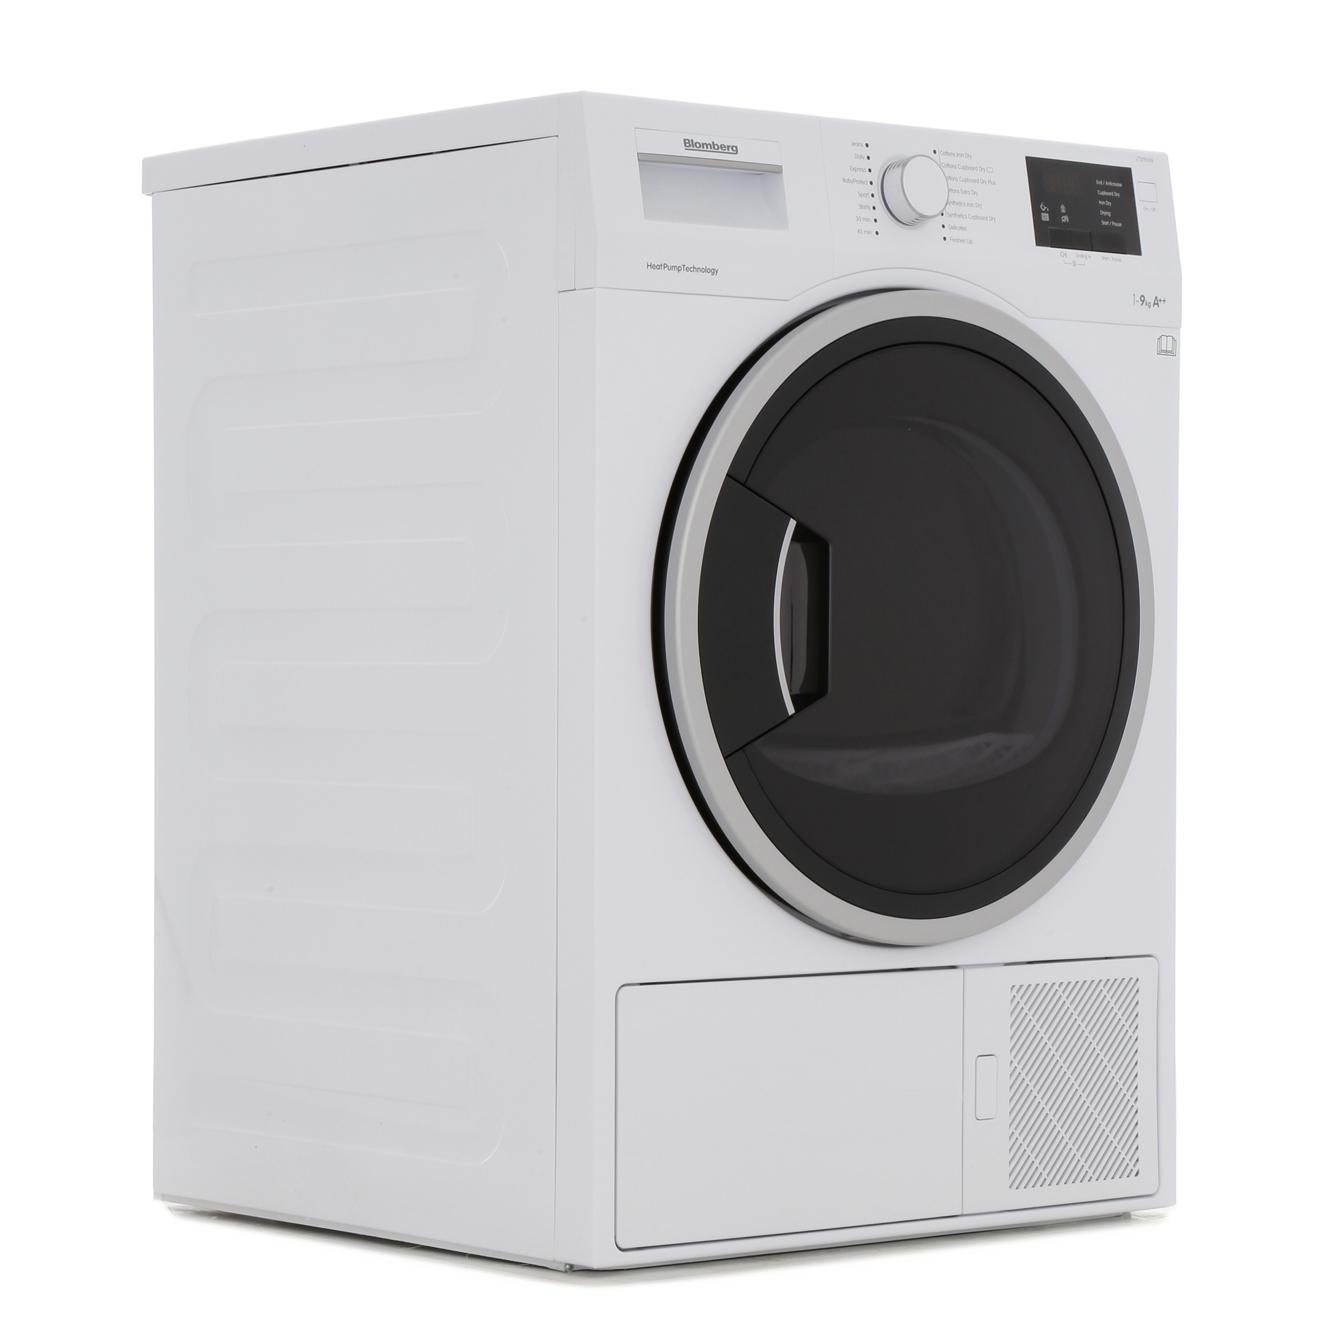 Blomberg LTS2932W Condenser Dryer with Heat Pump Technology